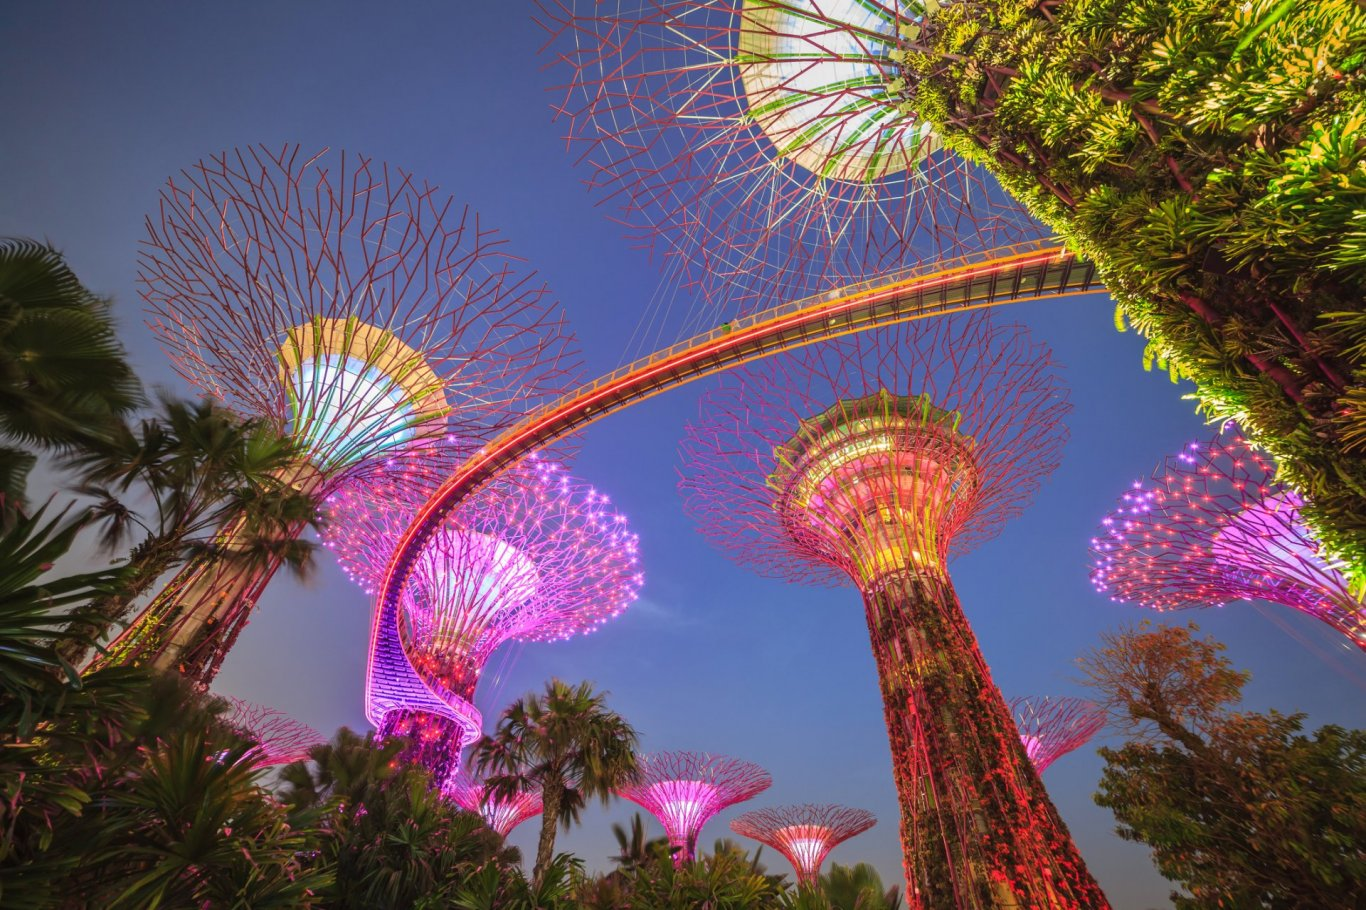 View looking up to the colour lights of the Gardens by the bay in Singapore